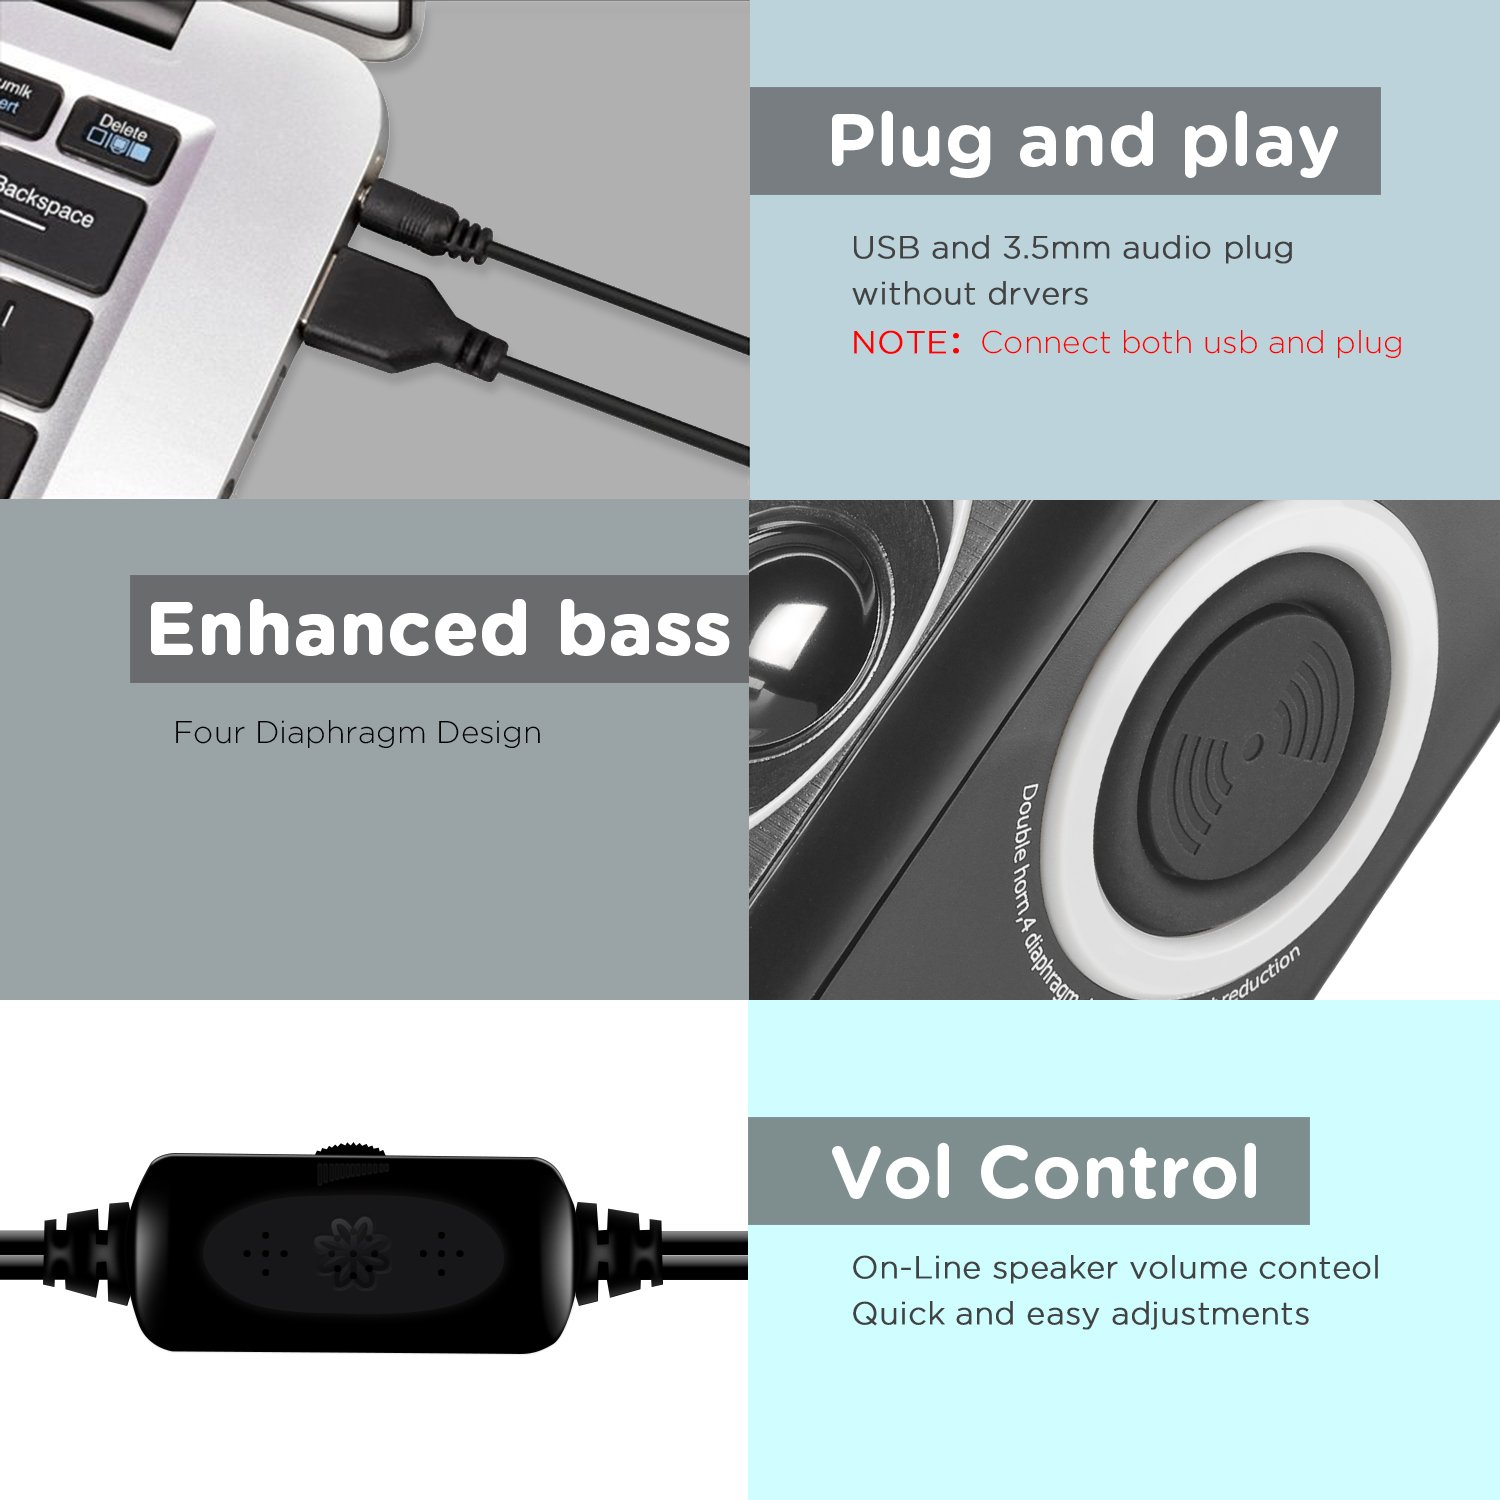 Computer Speakers With Surround Sound 2.0CH USB Wired Powered Multimedia Speaker for Desktop/TV/PC/Laptops/Smart Phone RECCAZR Built-in Four Loudspeaker Diaphragm (Gray) by RECCAZR (Image #4)